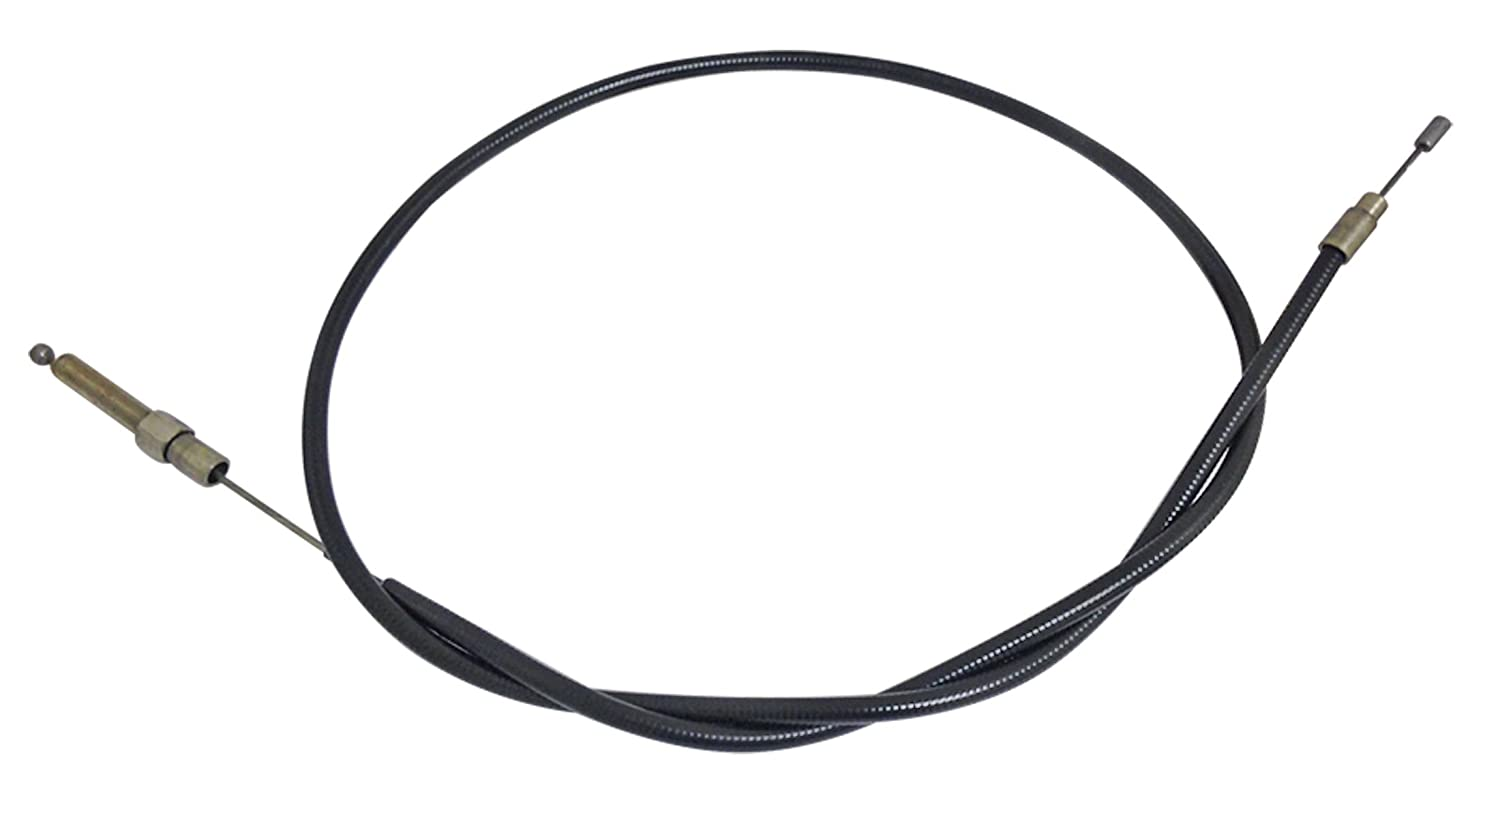 Superior Dixie Distributing Clutch Cable Assembly Harley Davidson 38618-68L FL FLH FXE FX FXS 38618-68